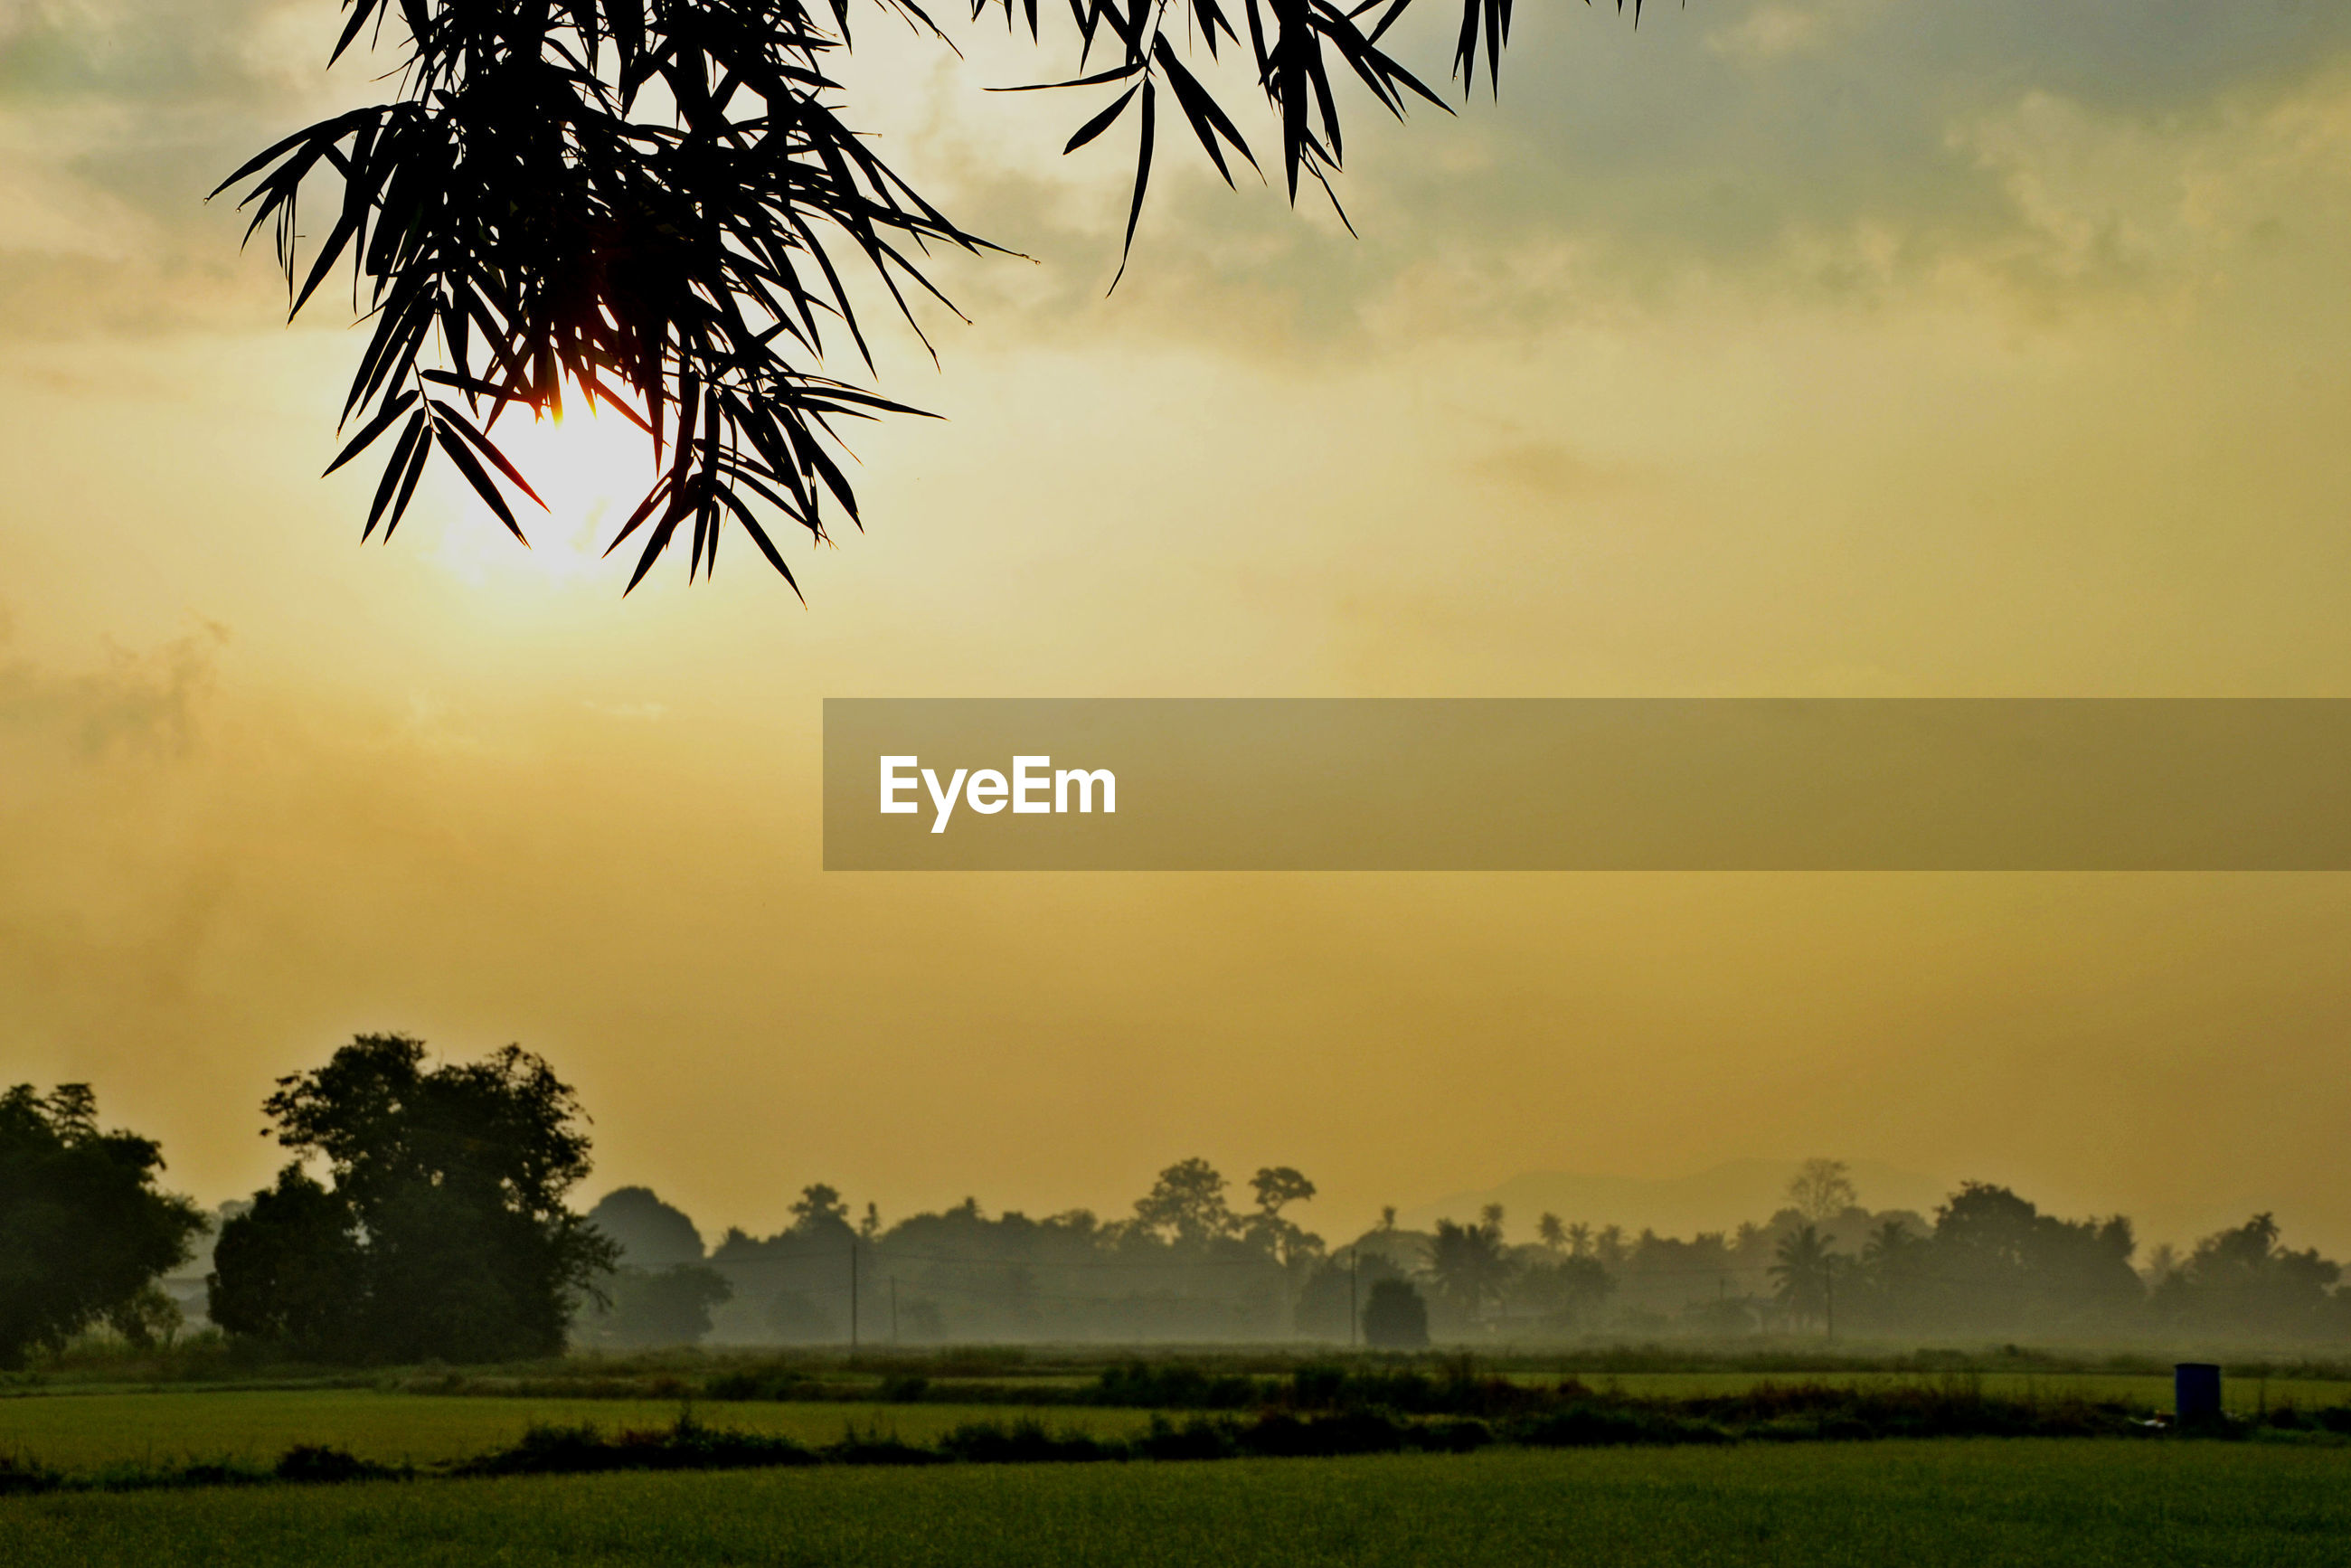 plant, sky, tree, beauty in nature, scenics - nature, tranquil scene, sunset, tranquility, environment, landscape, nature, growth, field, no people, land, palm tree, non-urban scene, outdoors, idyllic, grass, coconut palm tree